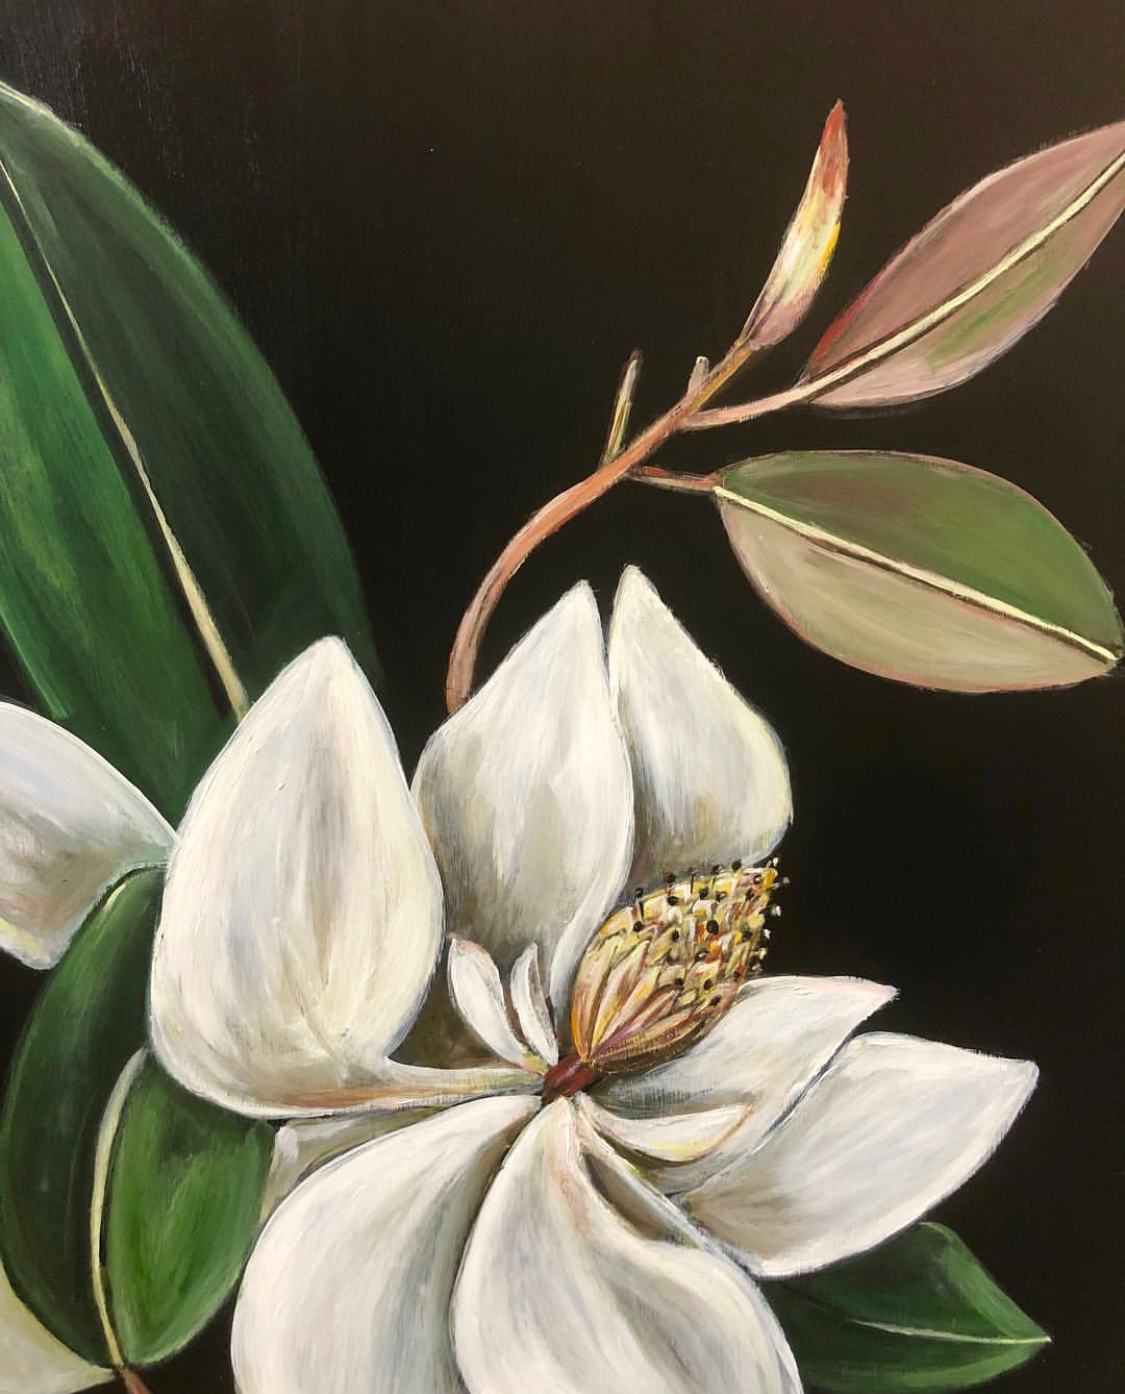 Magnolia Studies  - part of the Resin Flower Series by Mary Margaret Monsees , photo courtesy of her Instagram,  @mstudio